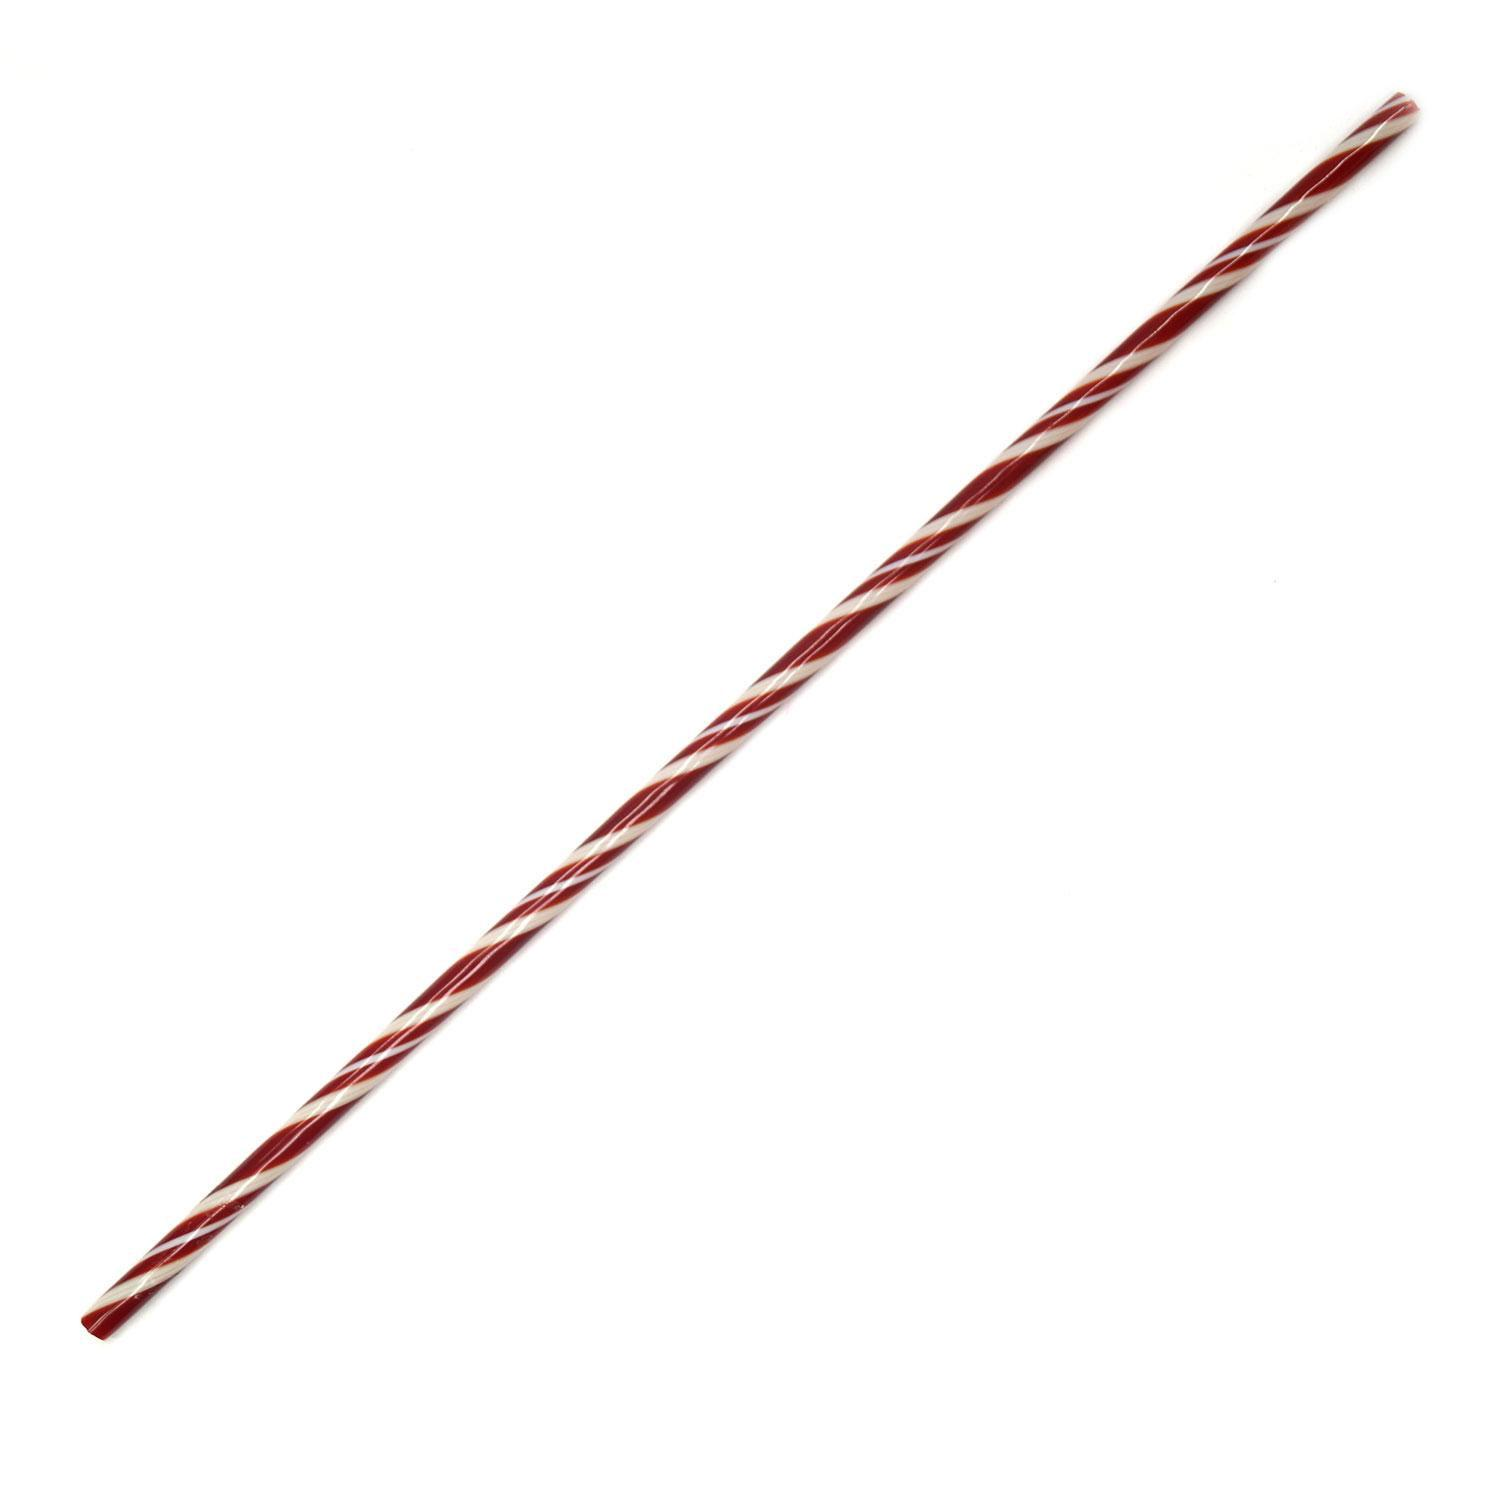 Red and White Glass Candy Cane Rod - 90 COE